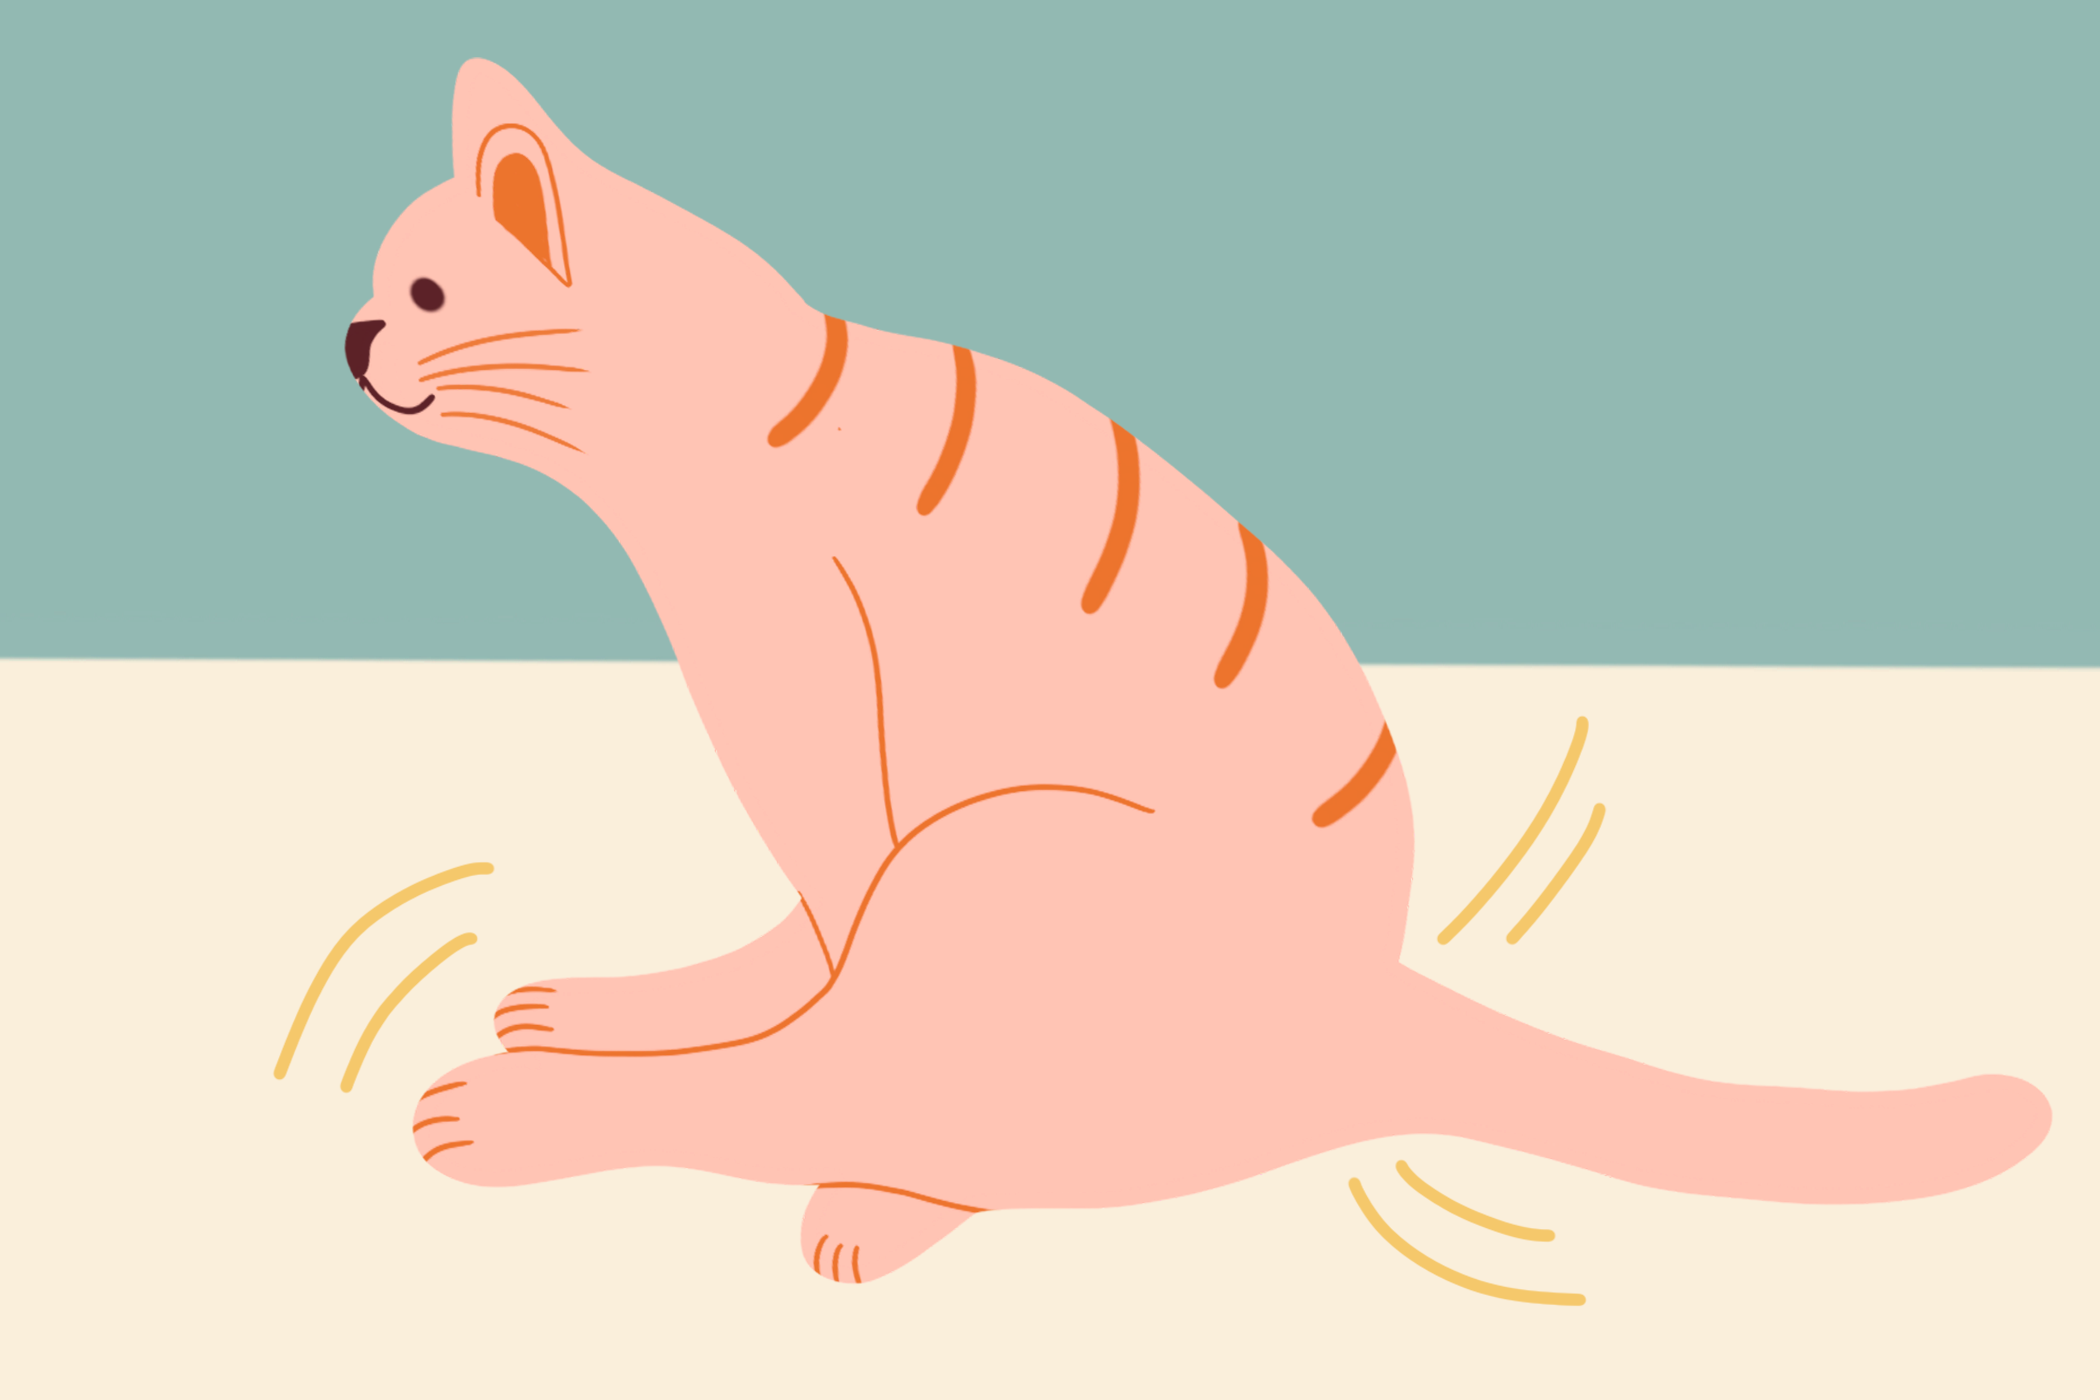 illustration of cat scooting across the floor